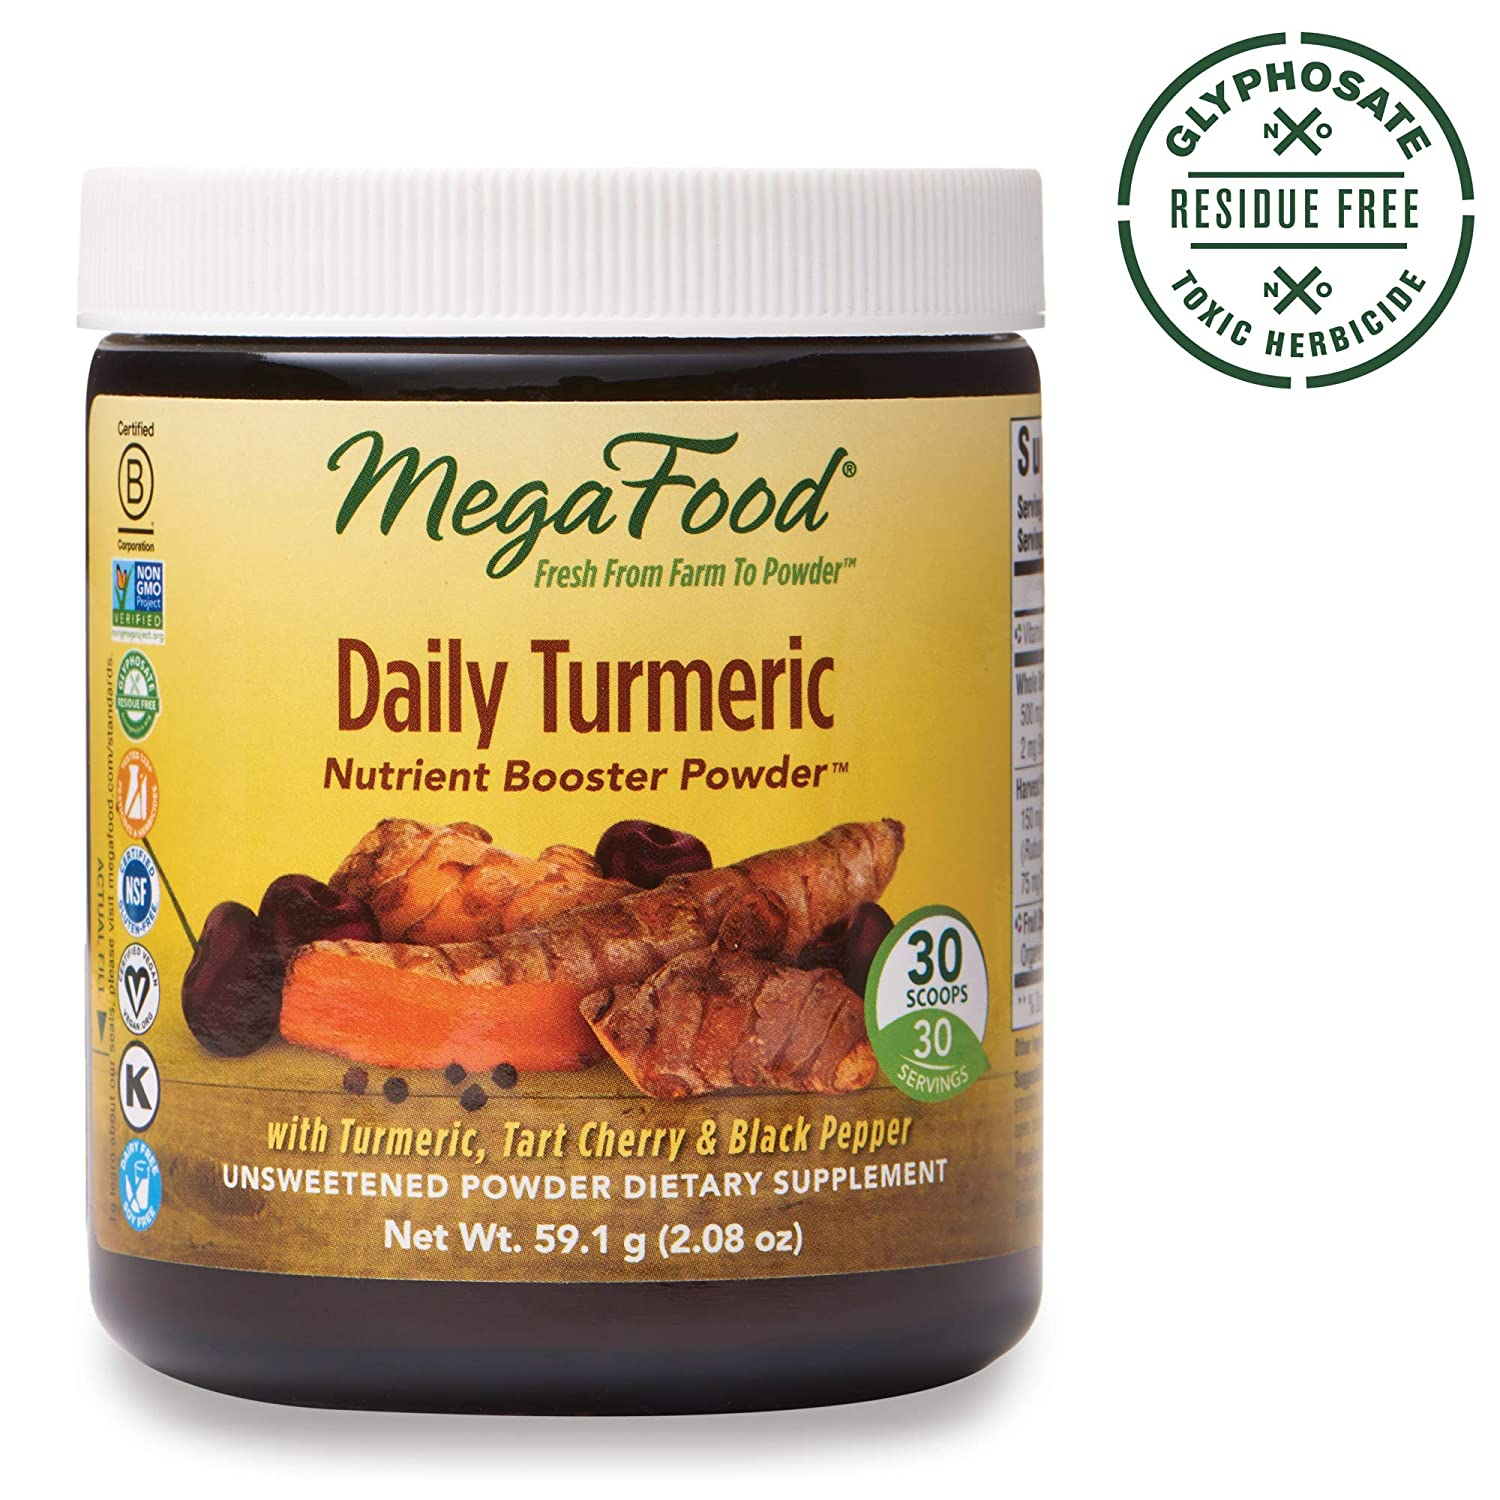 MegaFood, Daily Turmeric Nutrient Booster Powder, Post-Exercise Recovery,  Gluten Free, Vegan,